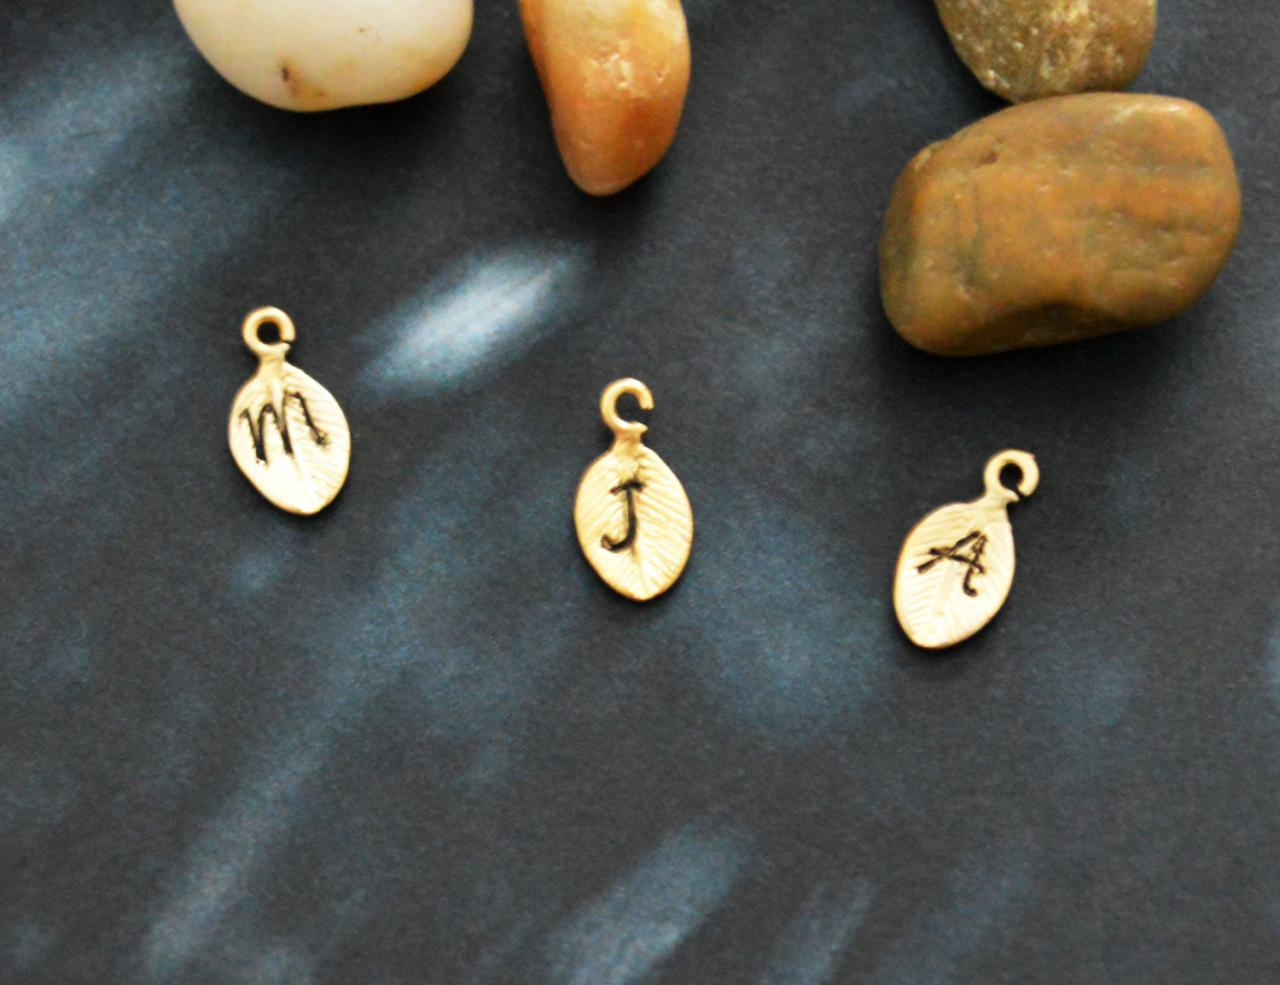 Add initials, Initial pendant, Leaf pendant, Initial charm, Add charms, Leaf charm, Gold plated, Findings/Necklace/Earrings/Bracelet/